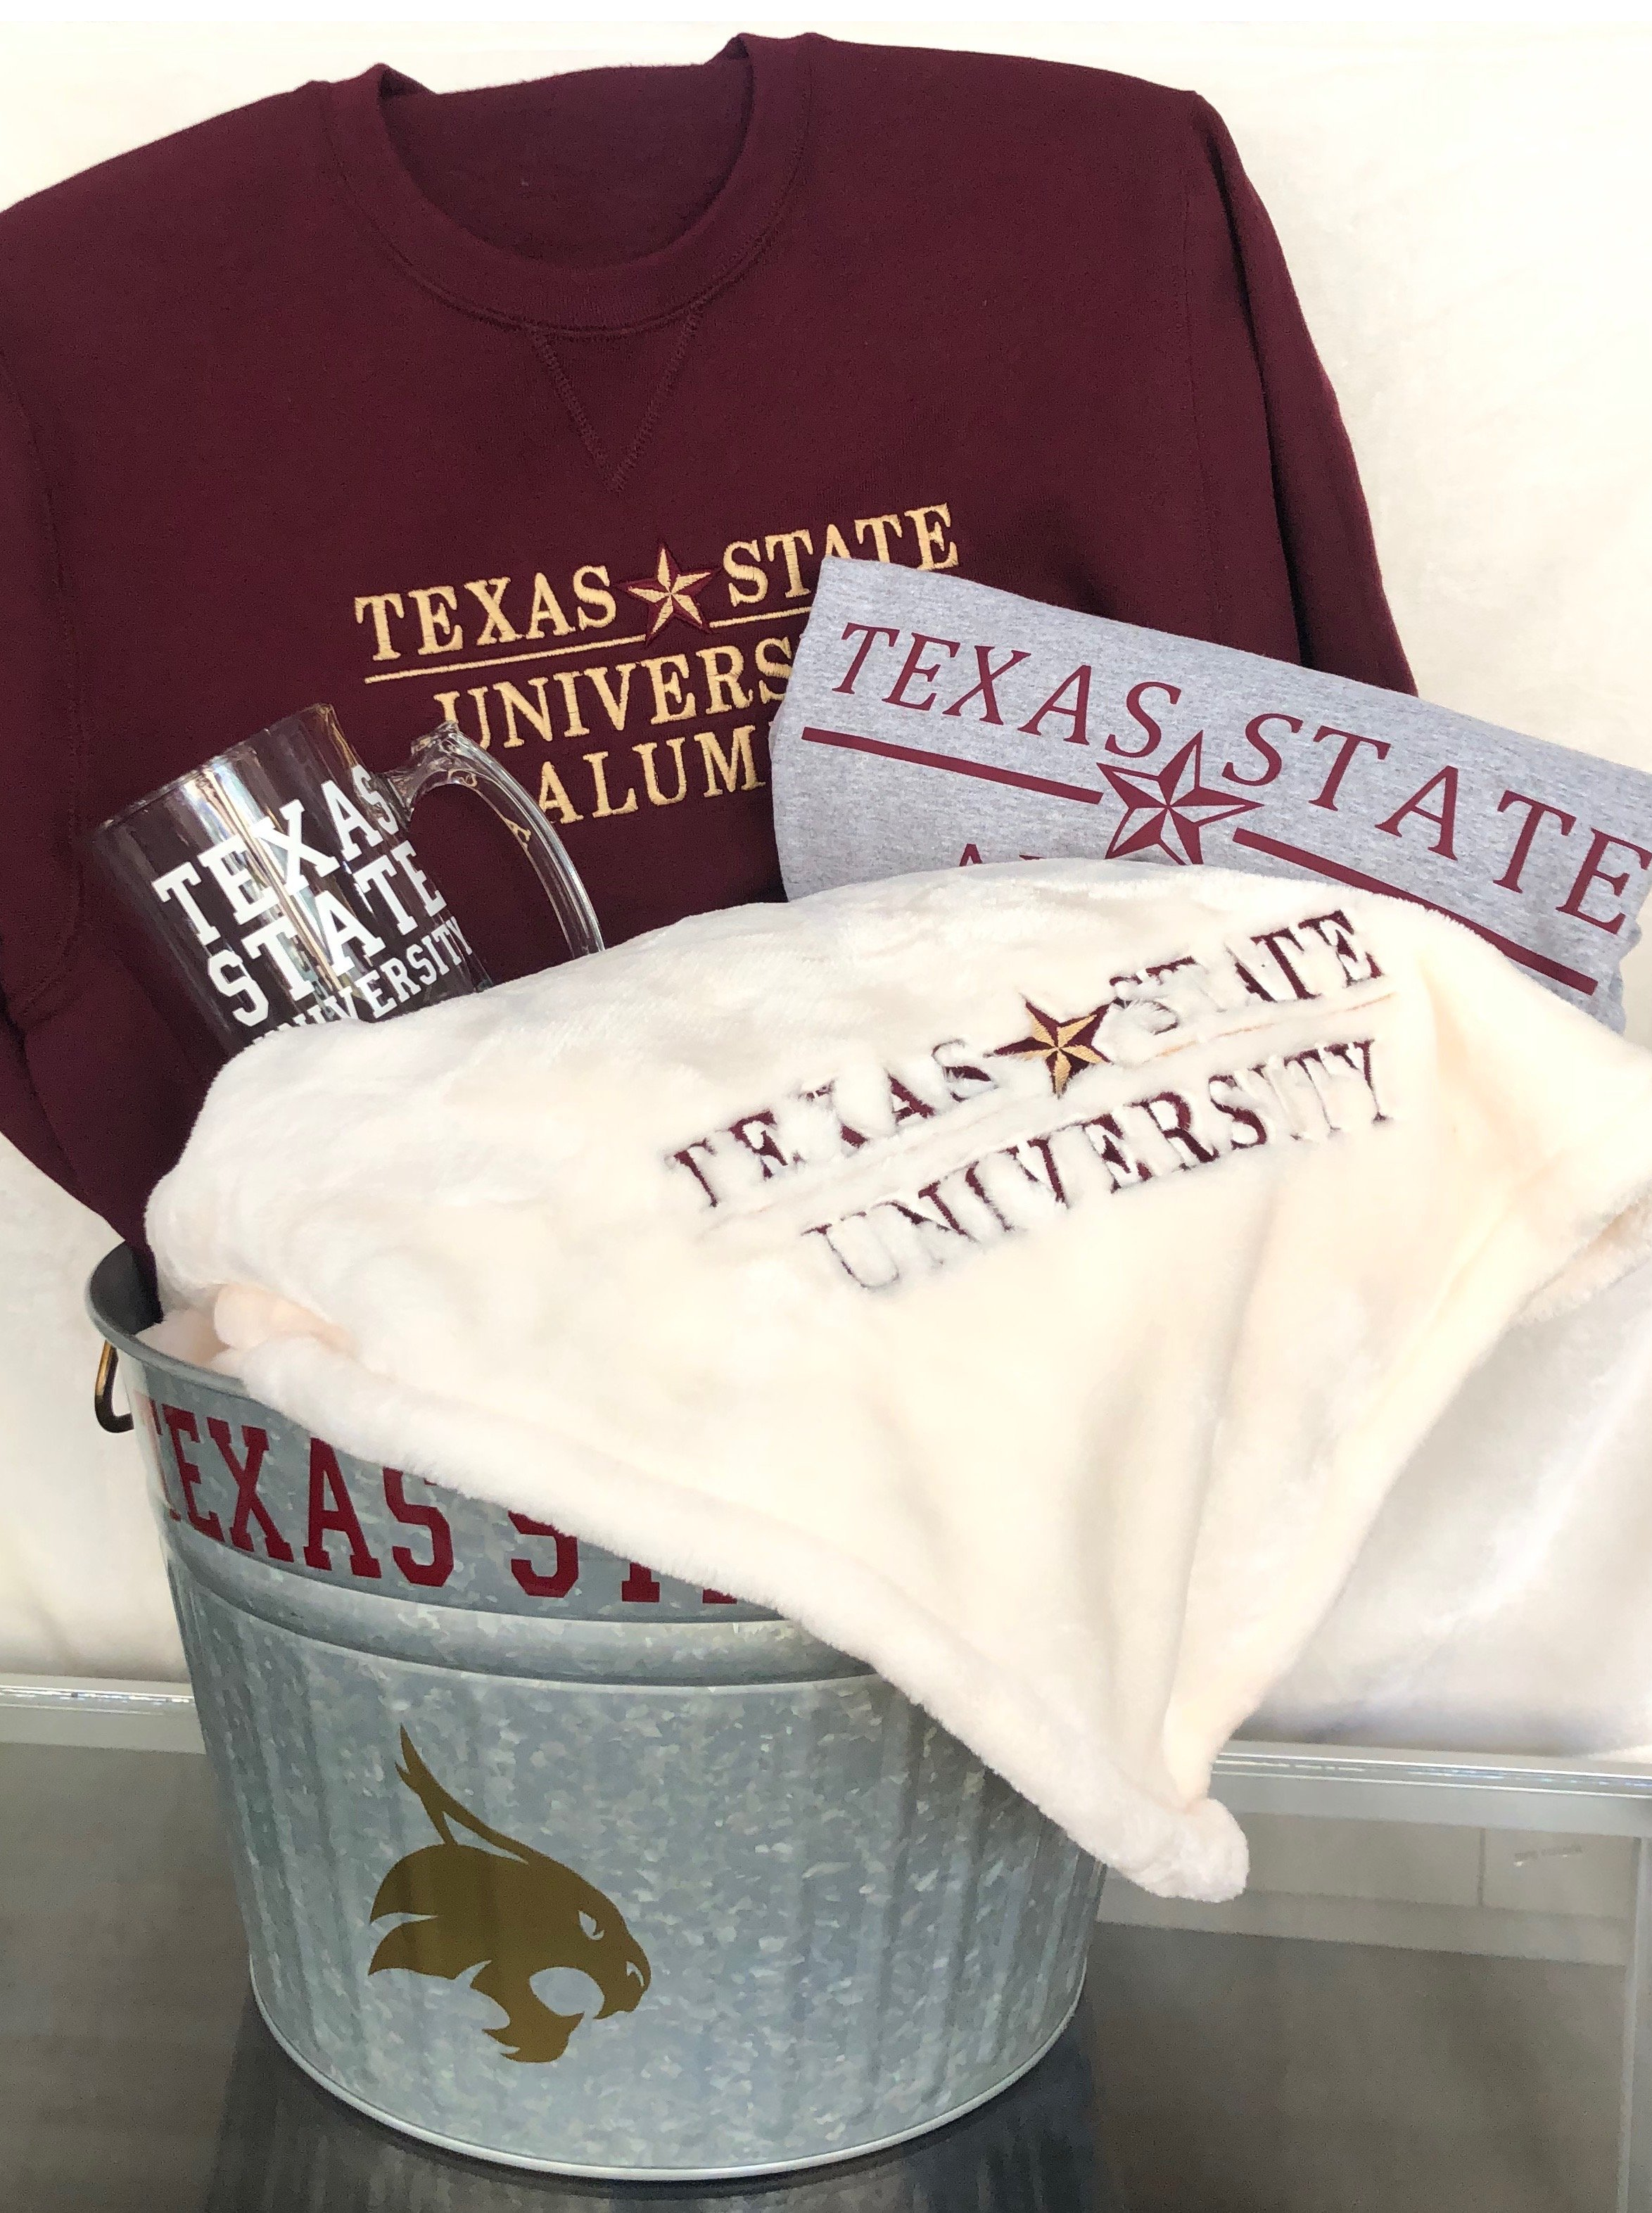 Texas State University TXST Graduation Package